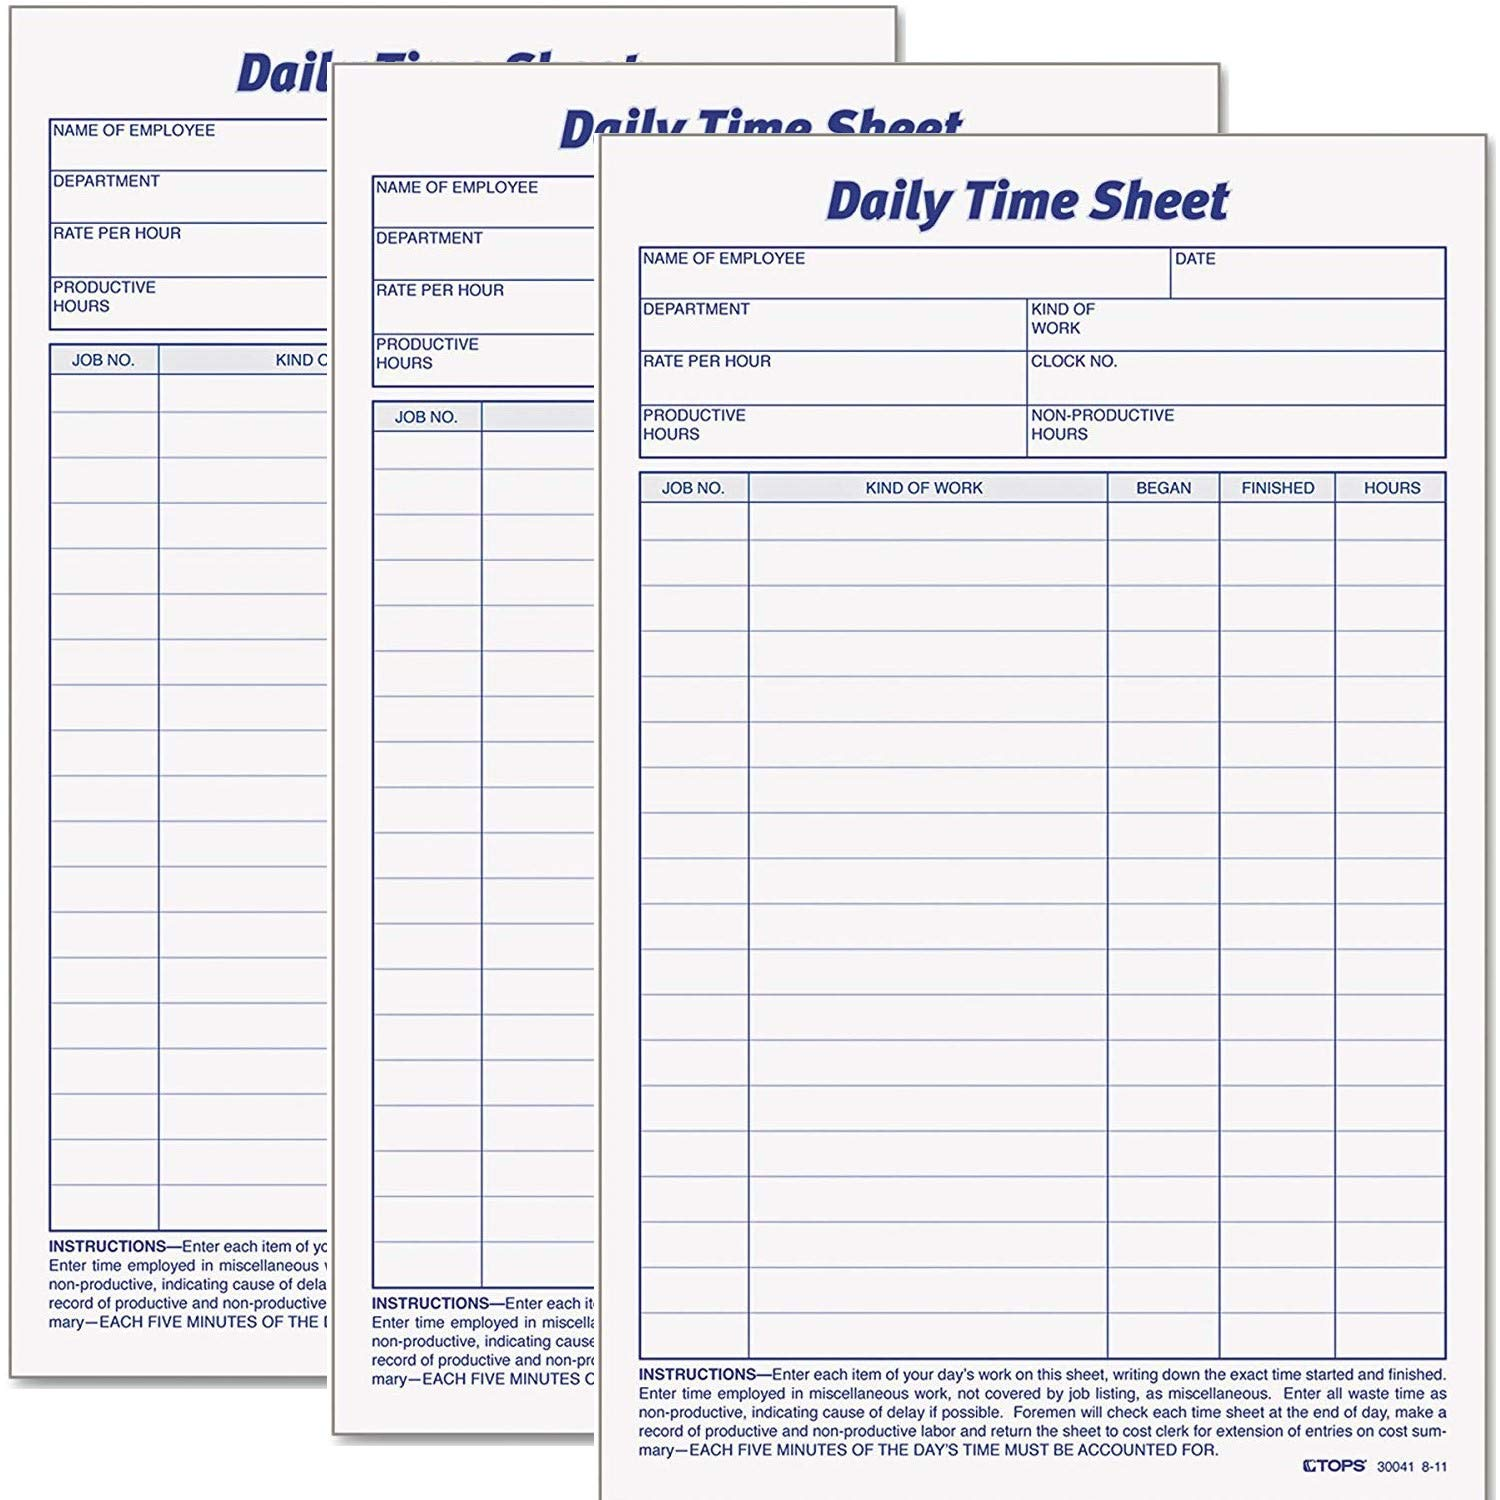 Tops Daily Employee Time And Job Sheet, 6 x 9.5 Inches, 100 Sheets per Pad, 6 Pads/Pack